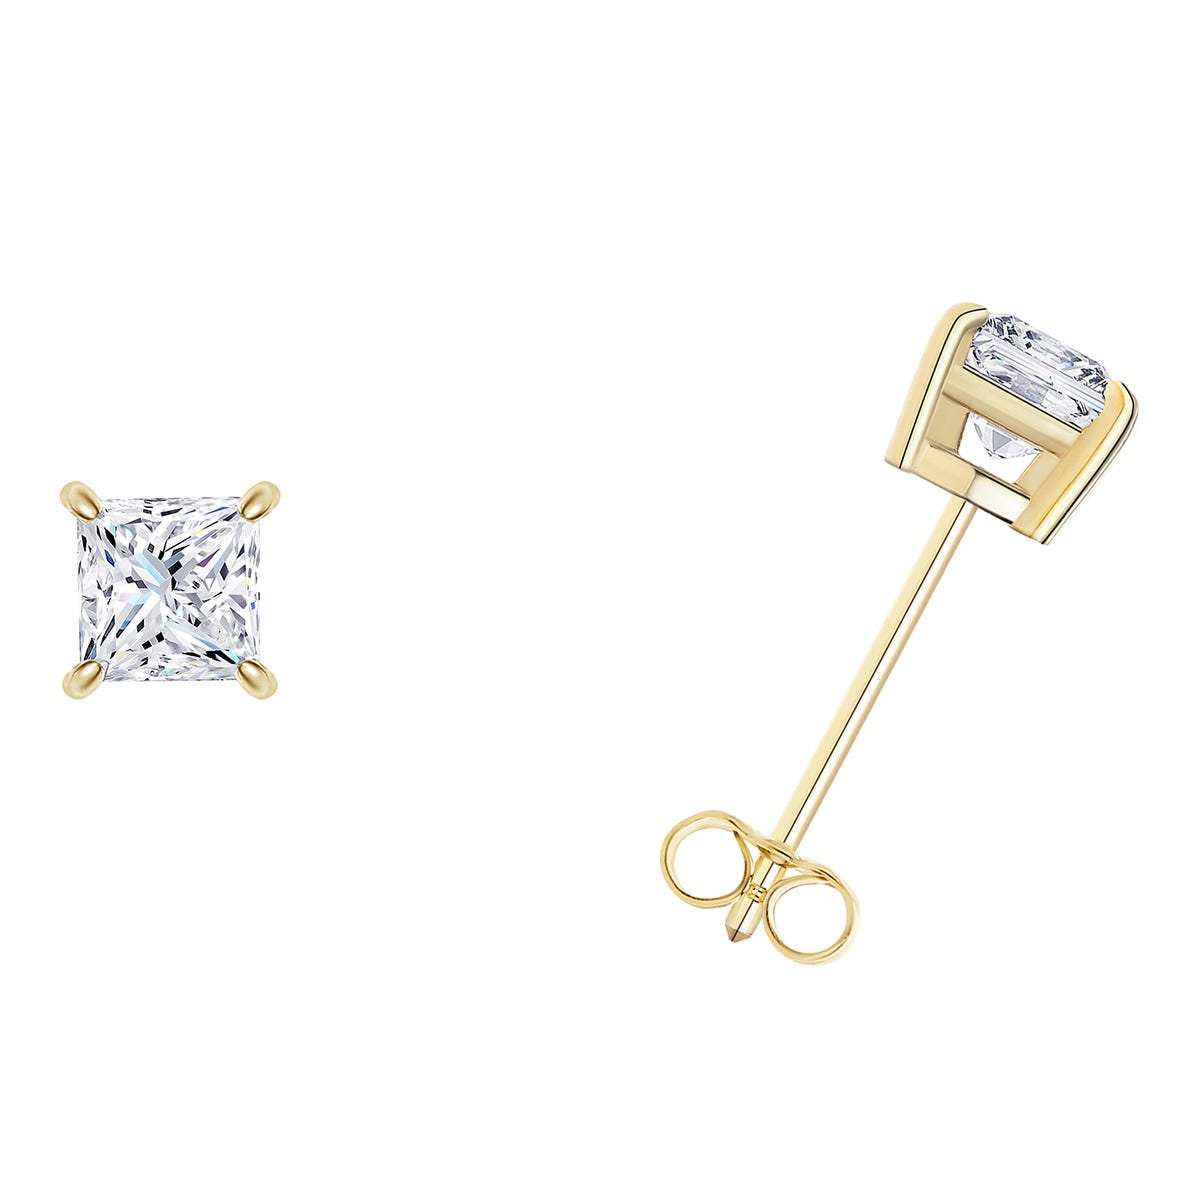 3/4 CTTW Princess Cut Diamond Solitaire Stud Earrings in 10K Yellow Gold IGI Certified